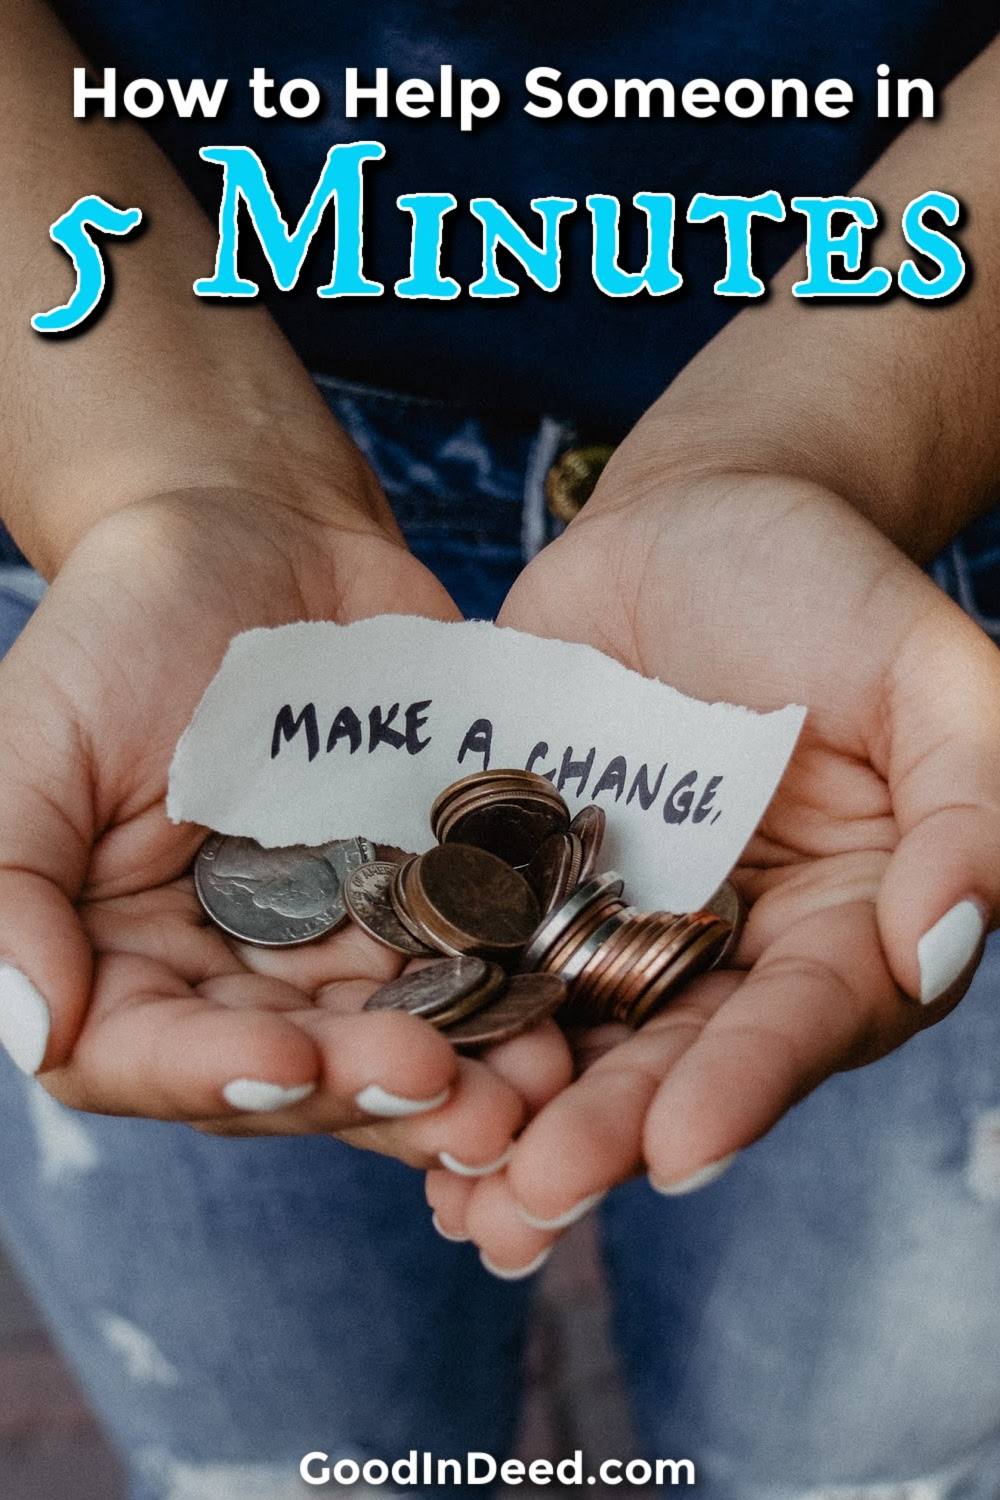 You can start using these ways to help someone in 5 minutes or less right now and the differences you will make may be immeasurable.